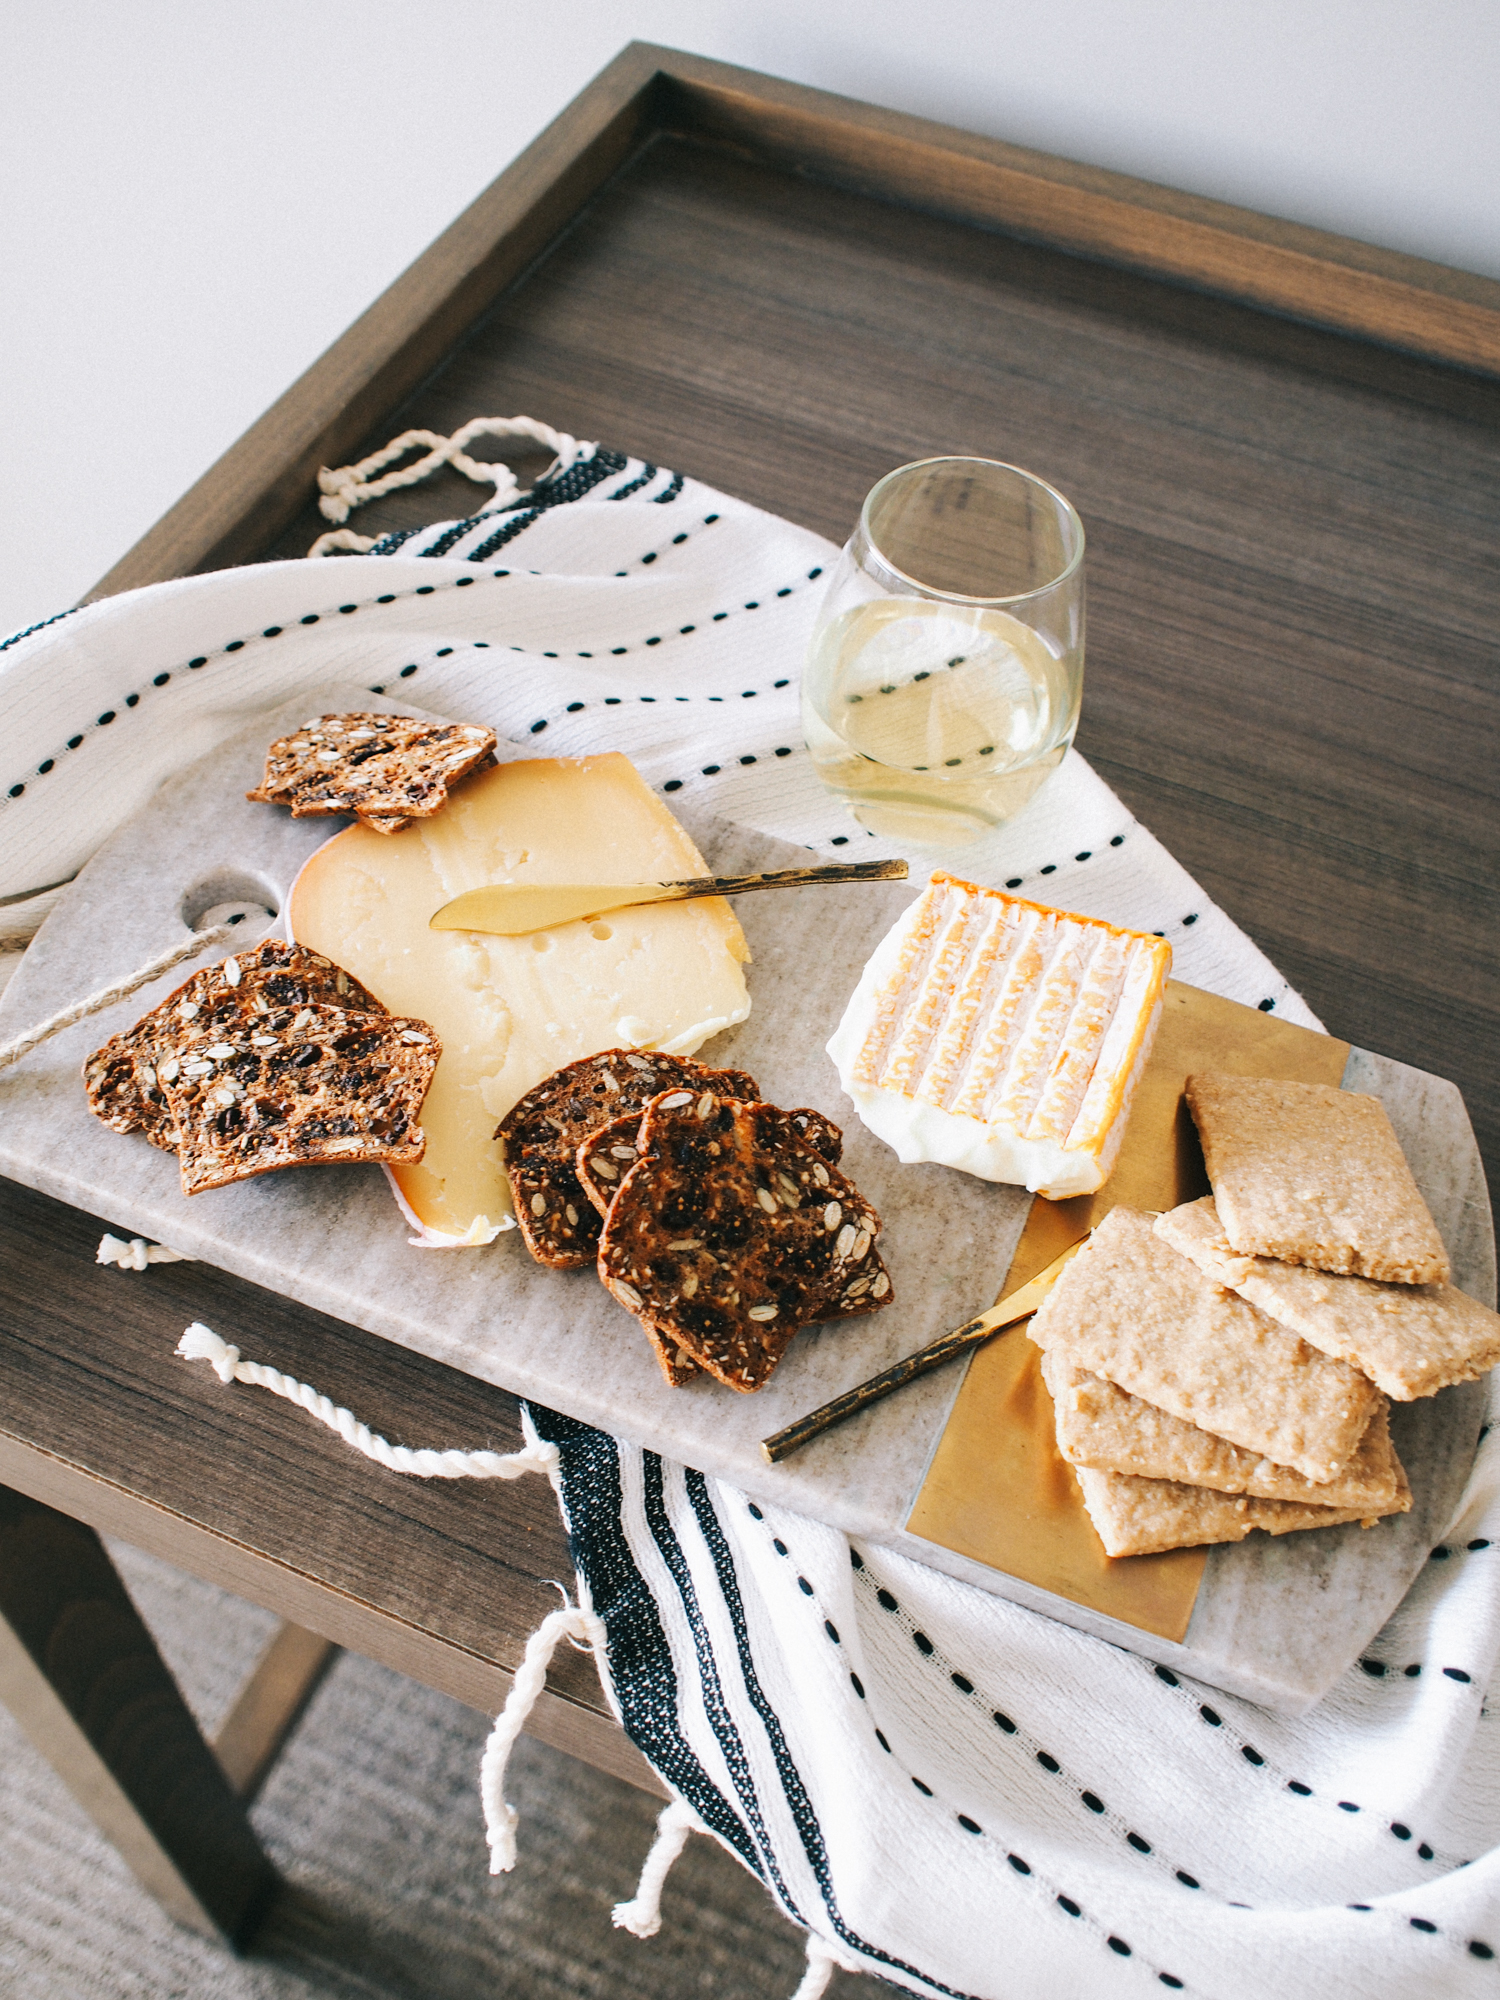 Hotel room cheese boards for happy hour, more on the blog about our fave cheese shop in Laguna! | A Fabulous Fete